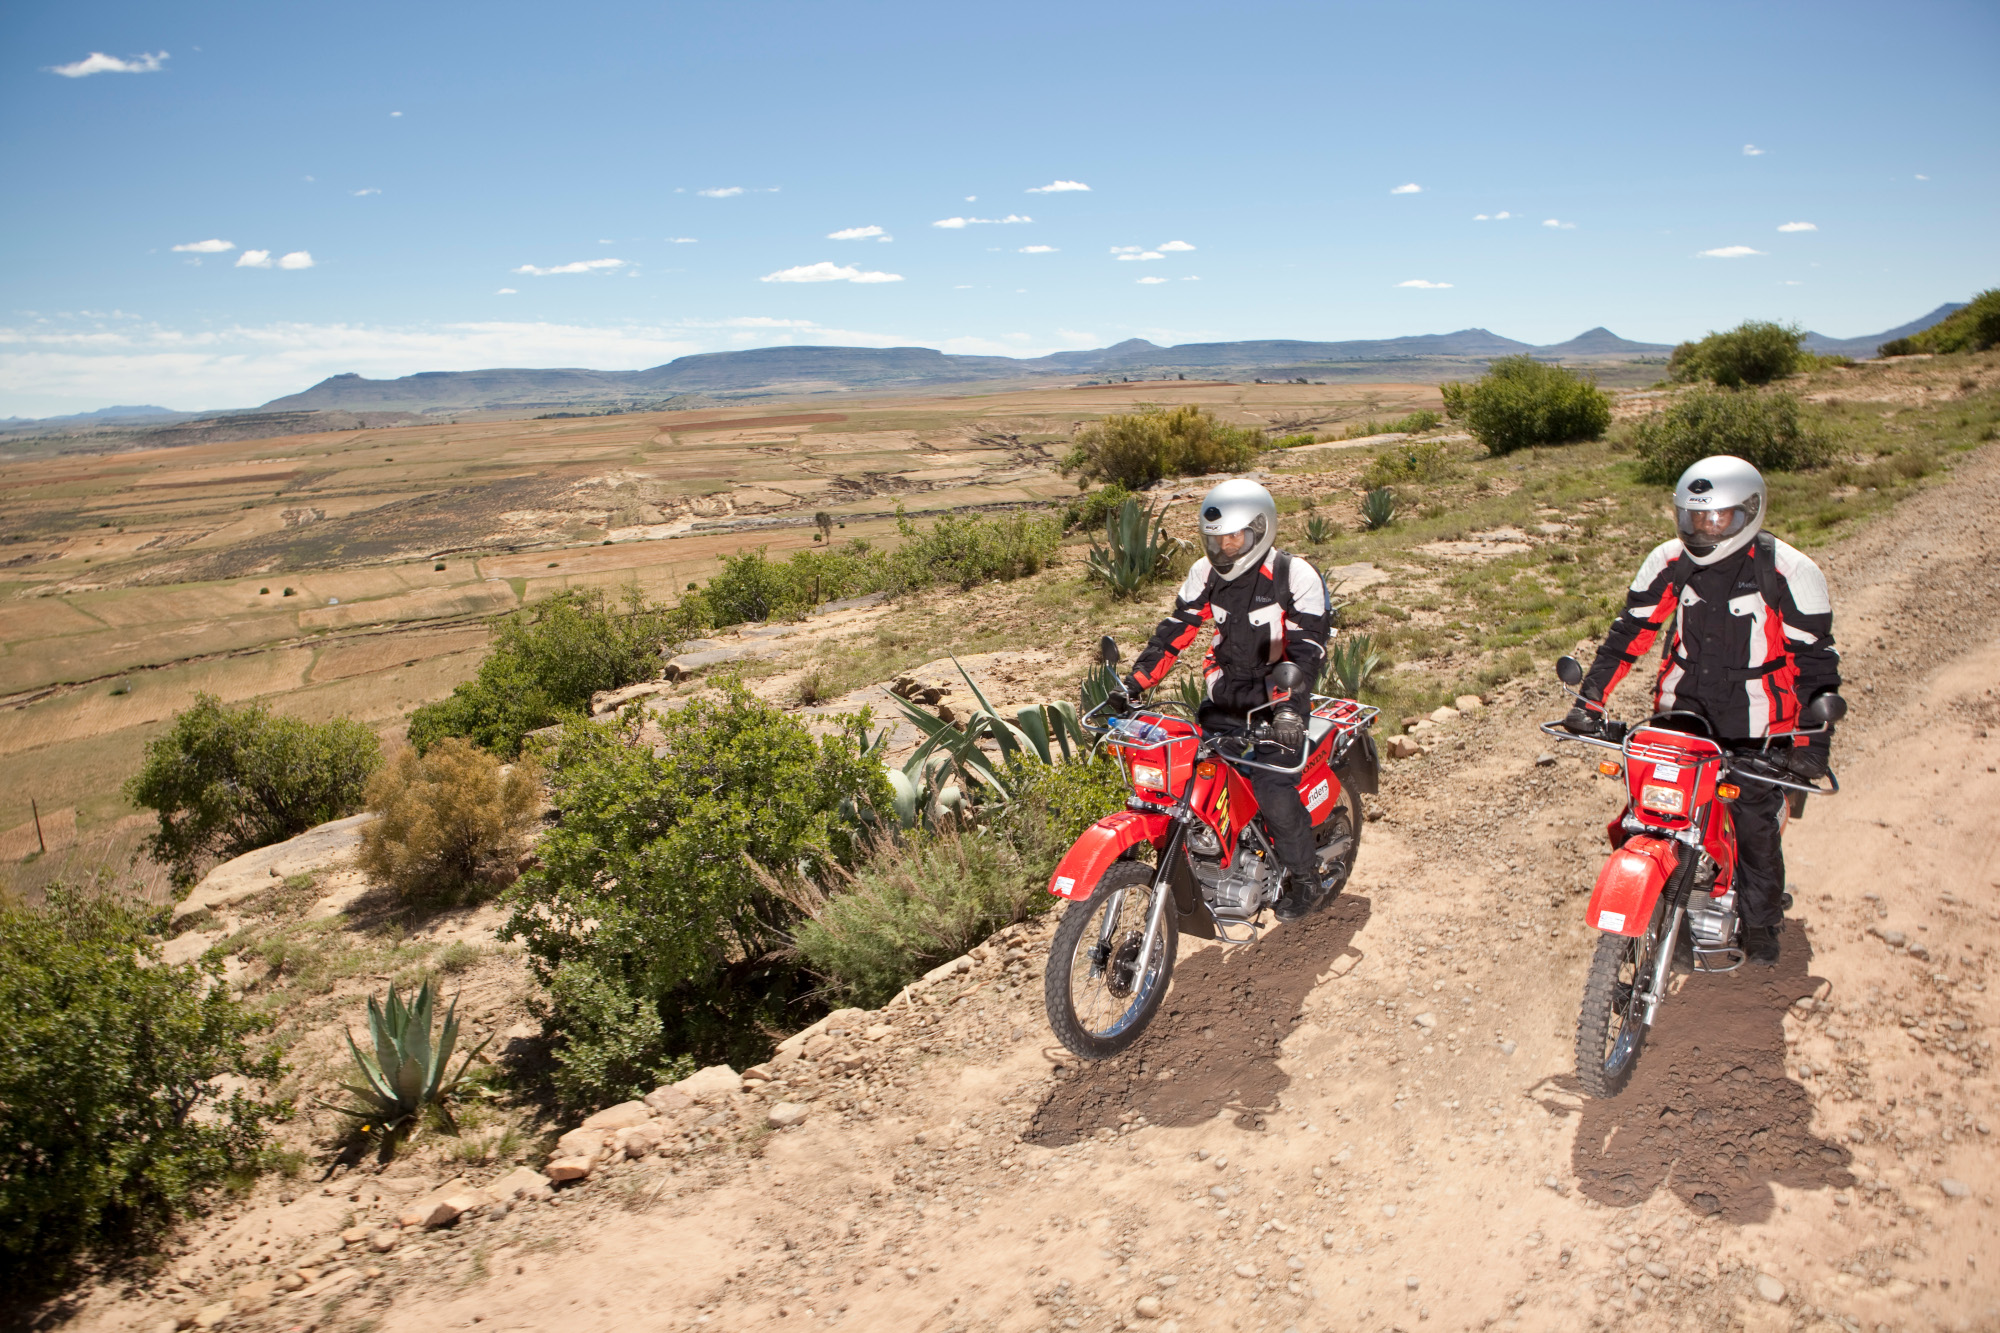 Sample health workers:  Riders for Health Lesotho are experts in sample transport. Their network of xx and xx lkasjdf;lkajsfd;lkjas fd. alskdfj;lasjkdf .